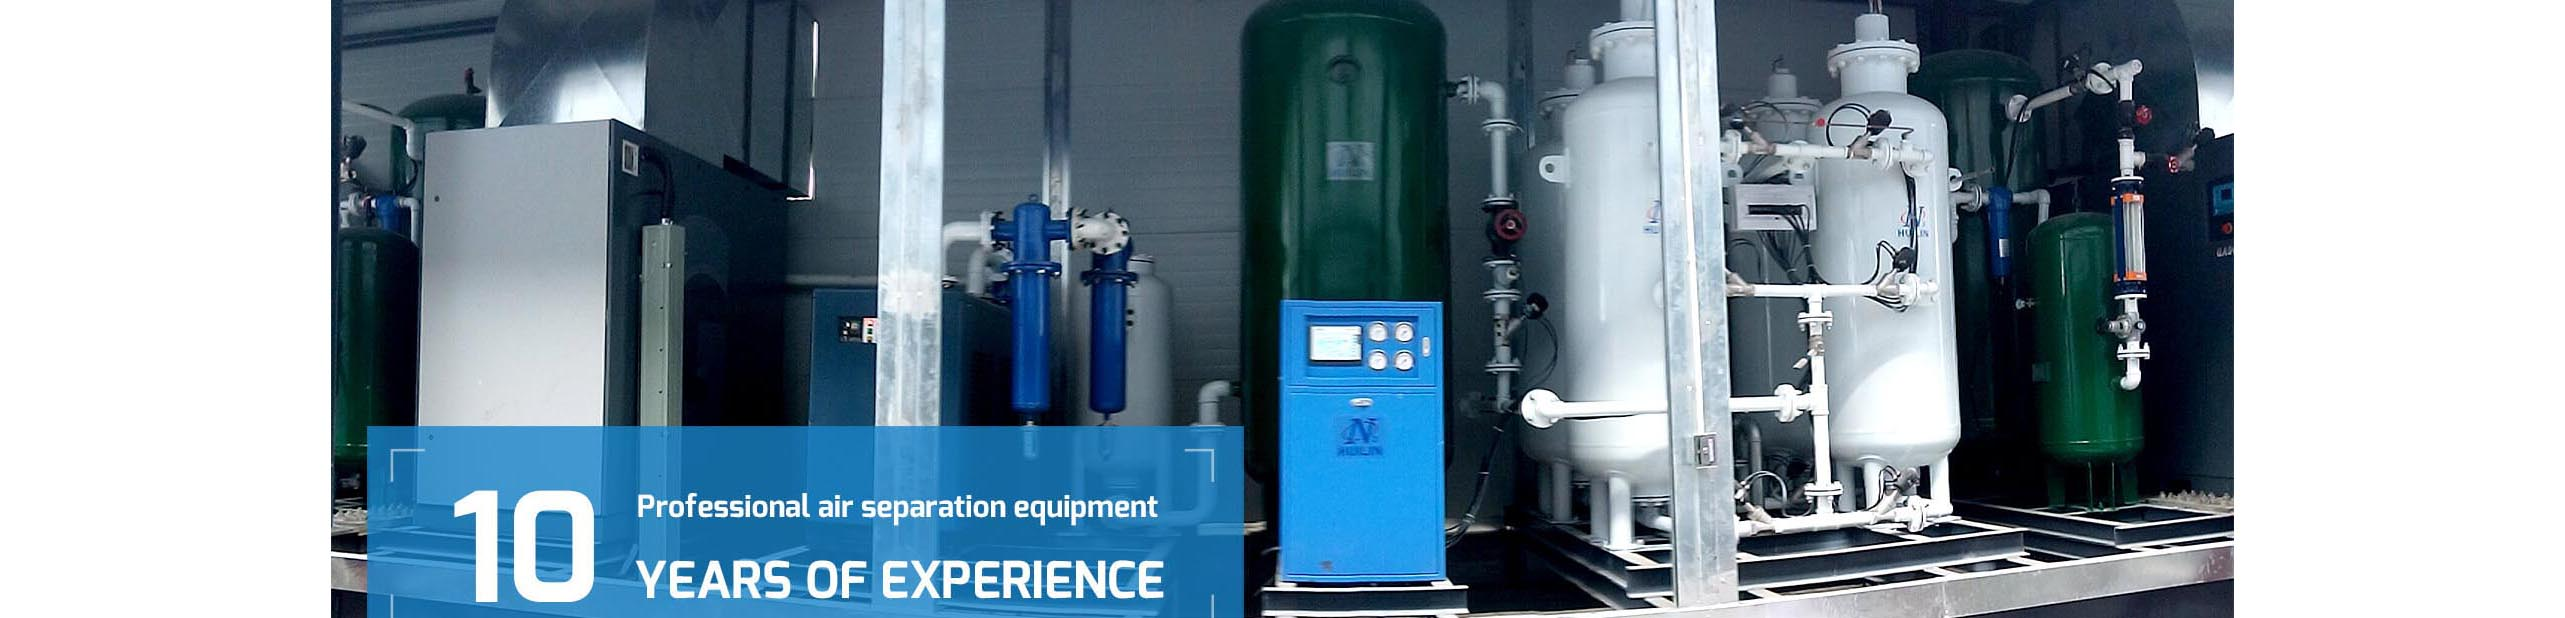 Air separation equipment manufactuer